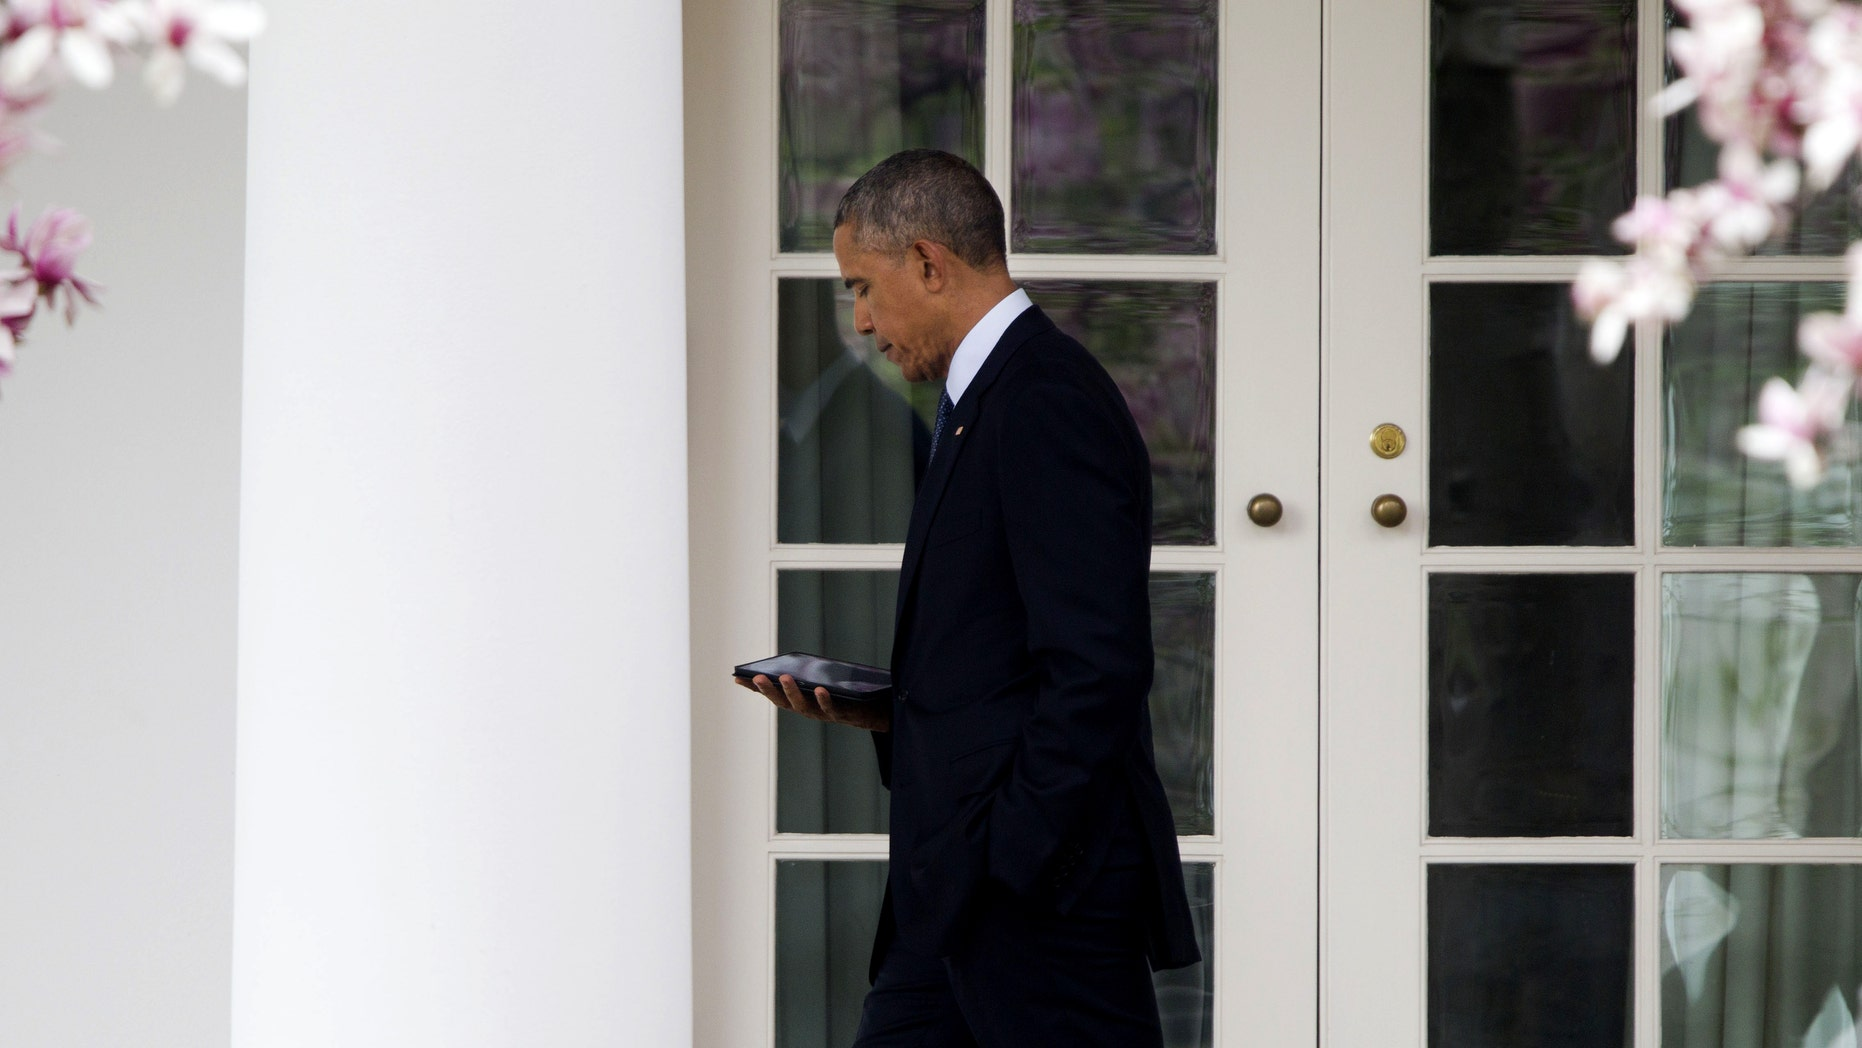 President Obama walks back to the Oval Office of the White House in Washington, Tuesday, April 7, 2015.